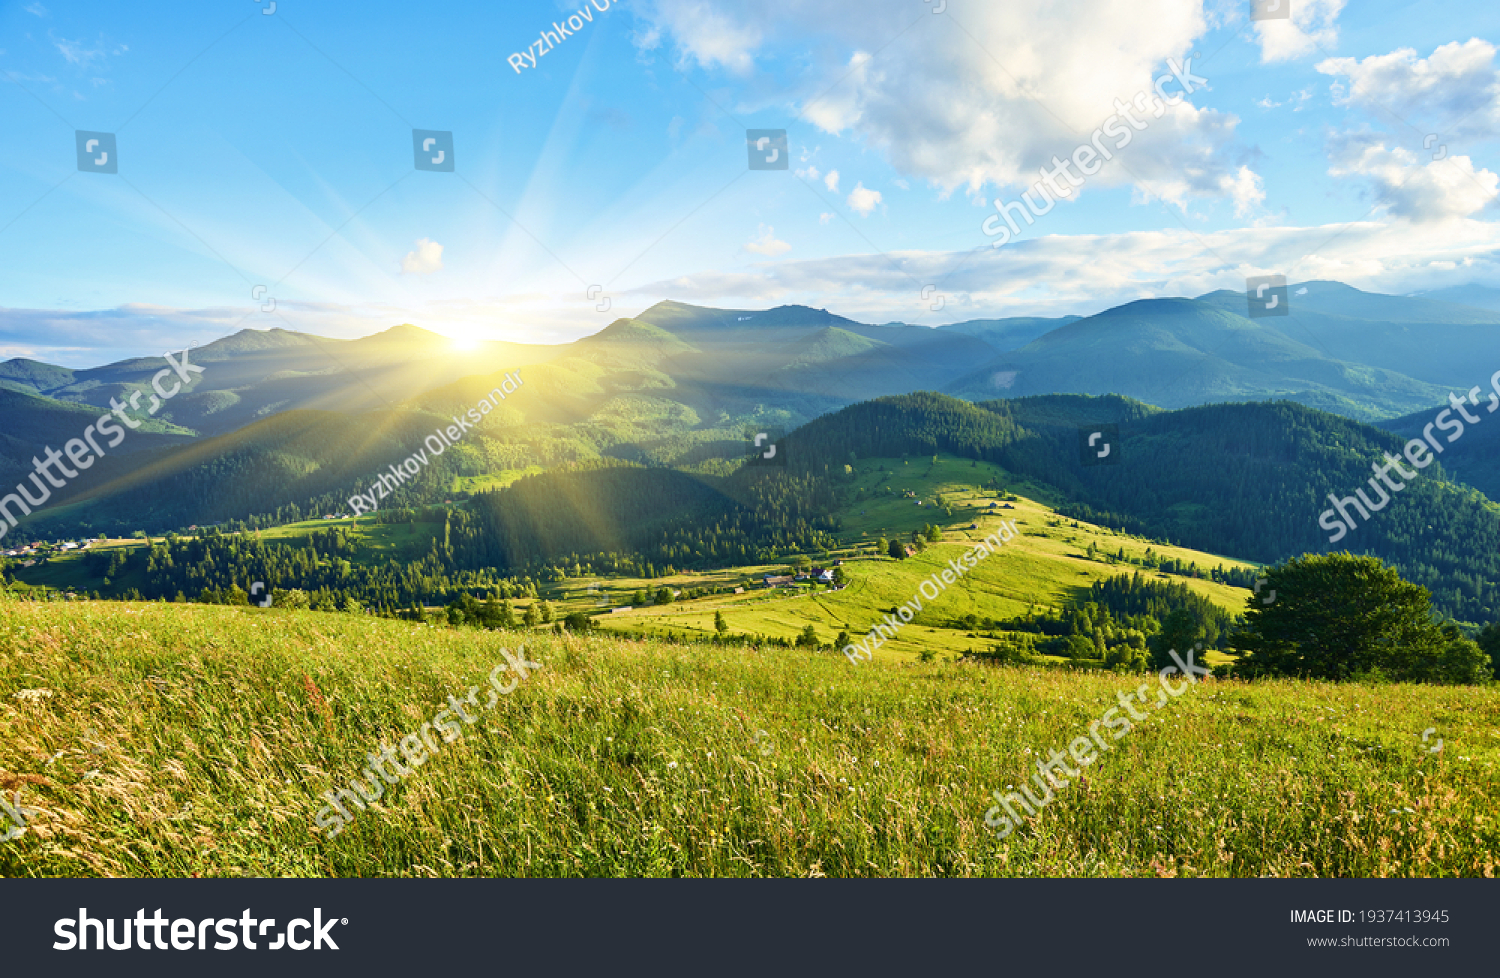 Idyllic landscape in the Alps with fresh green meadows and blooming flowers and snow-capped mountain tops in the background #1937413945